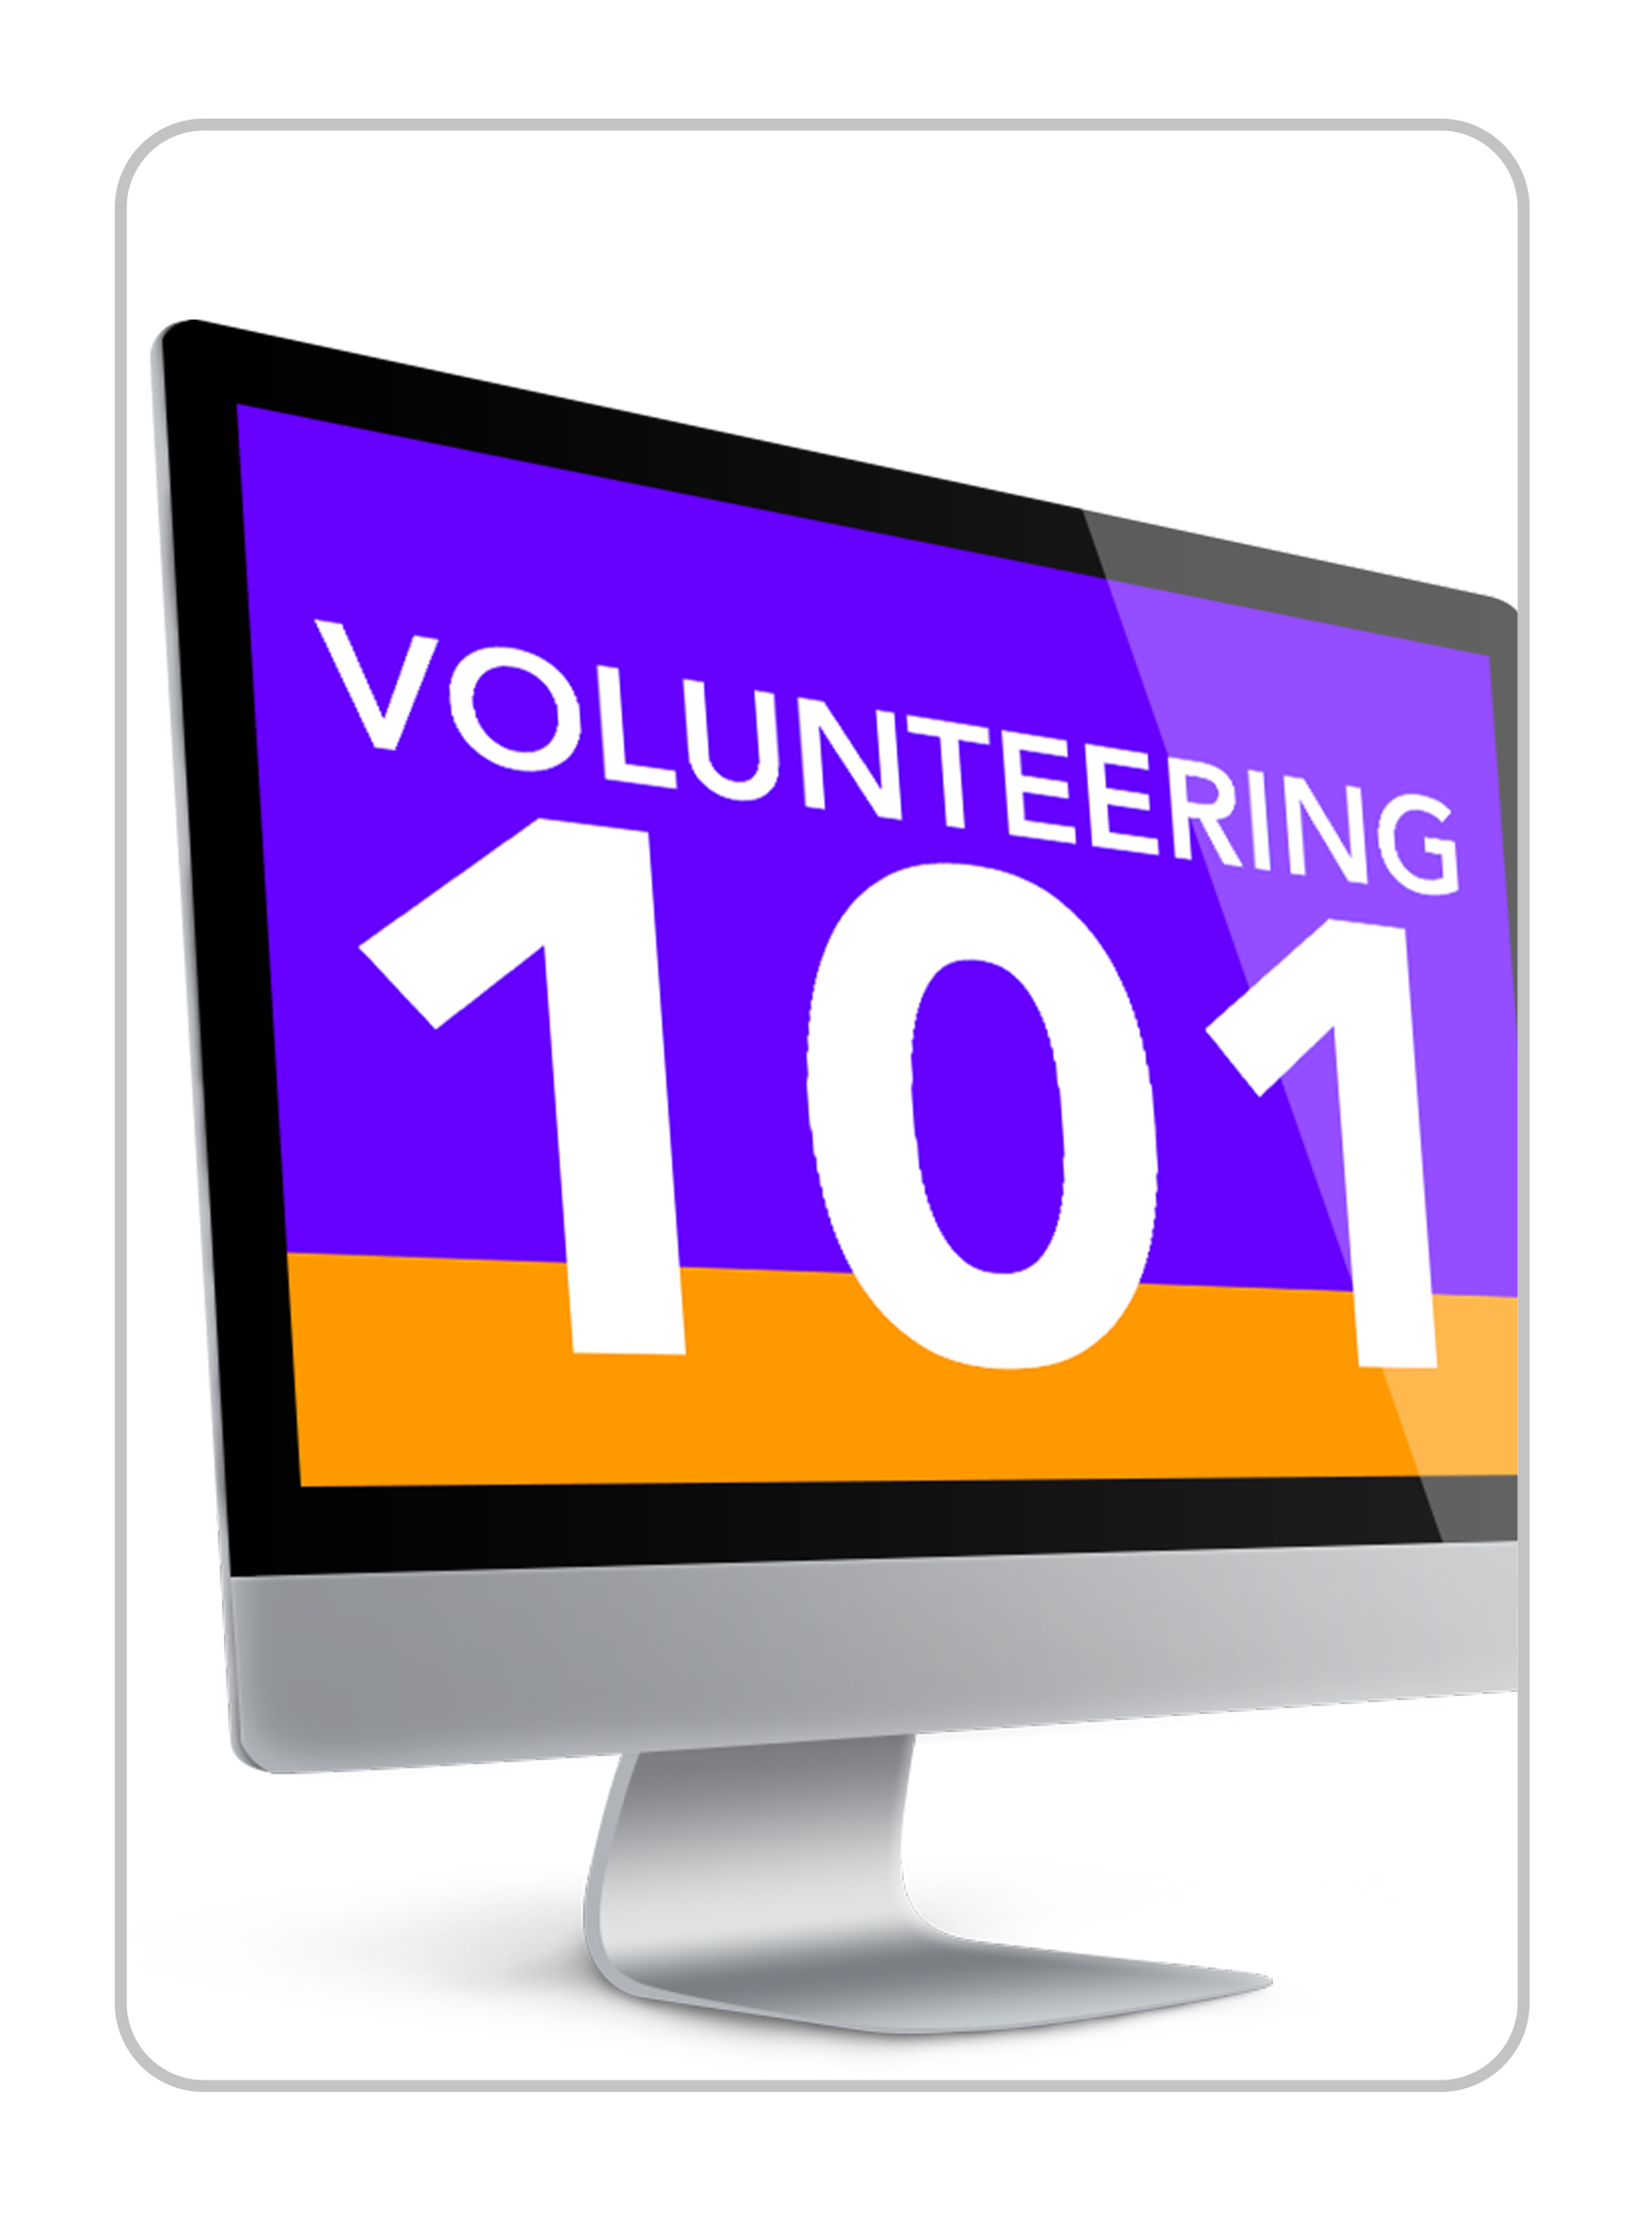 Plan clipart event planning. Basic guide to volunteering